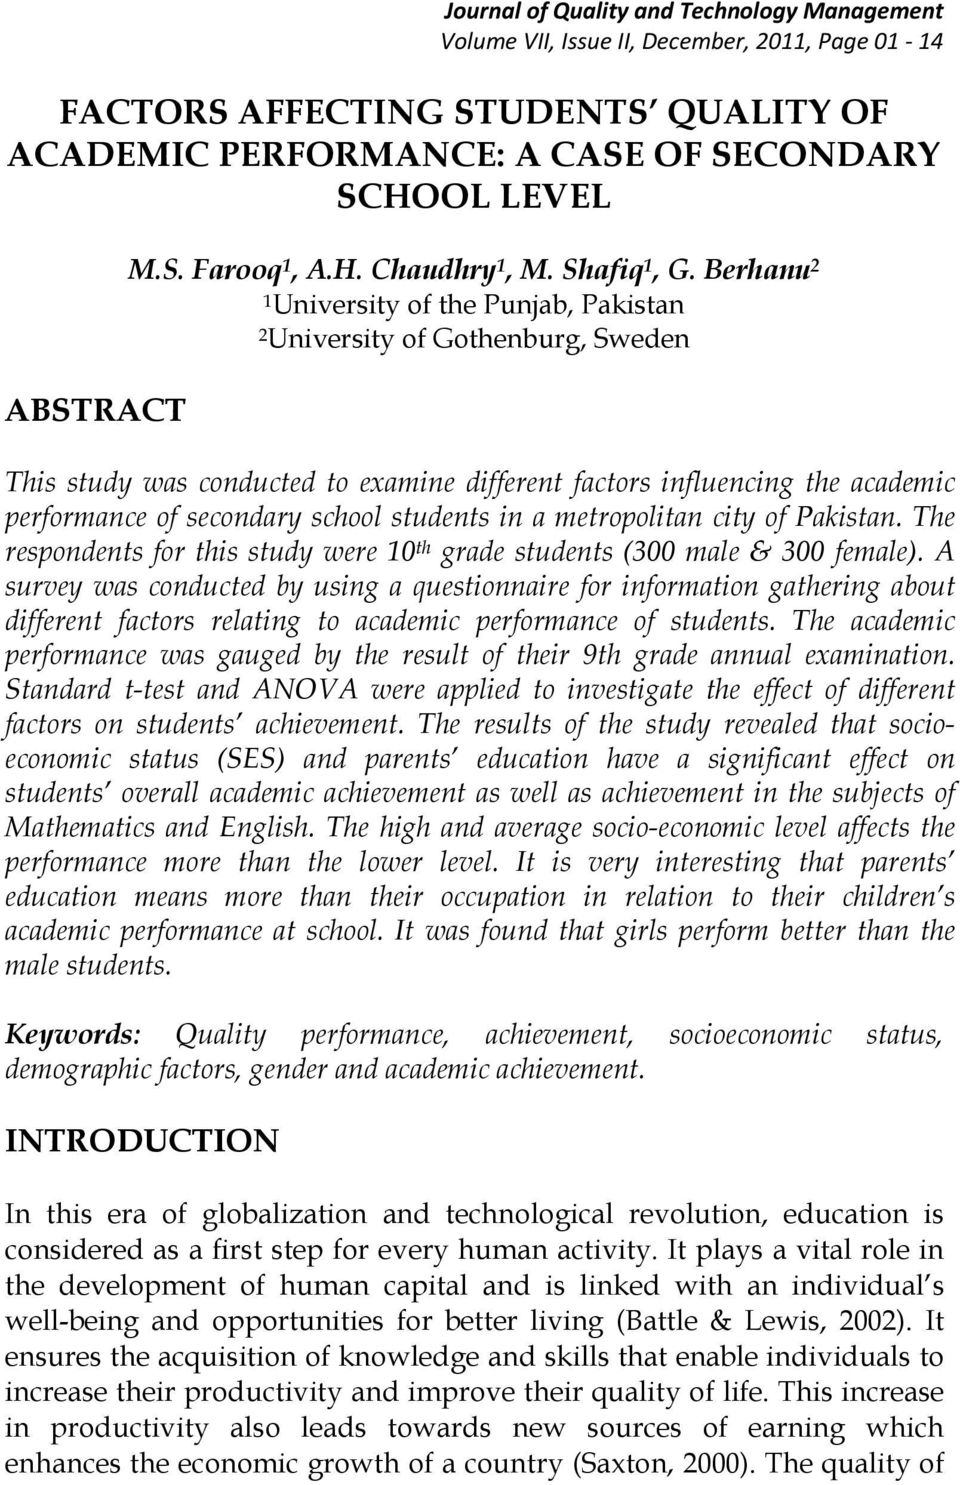 FACTORS AFFECTING STUDENTS QUALITY OF ACADEMIC PERFORMANCE